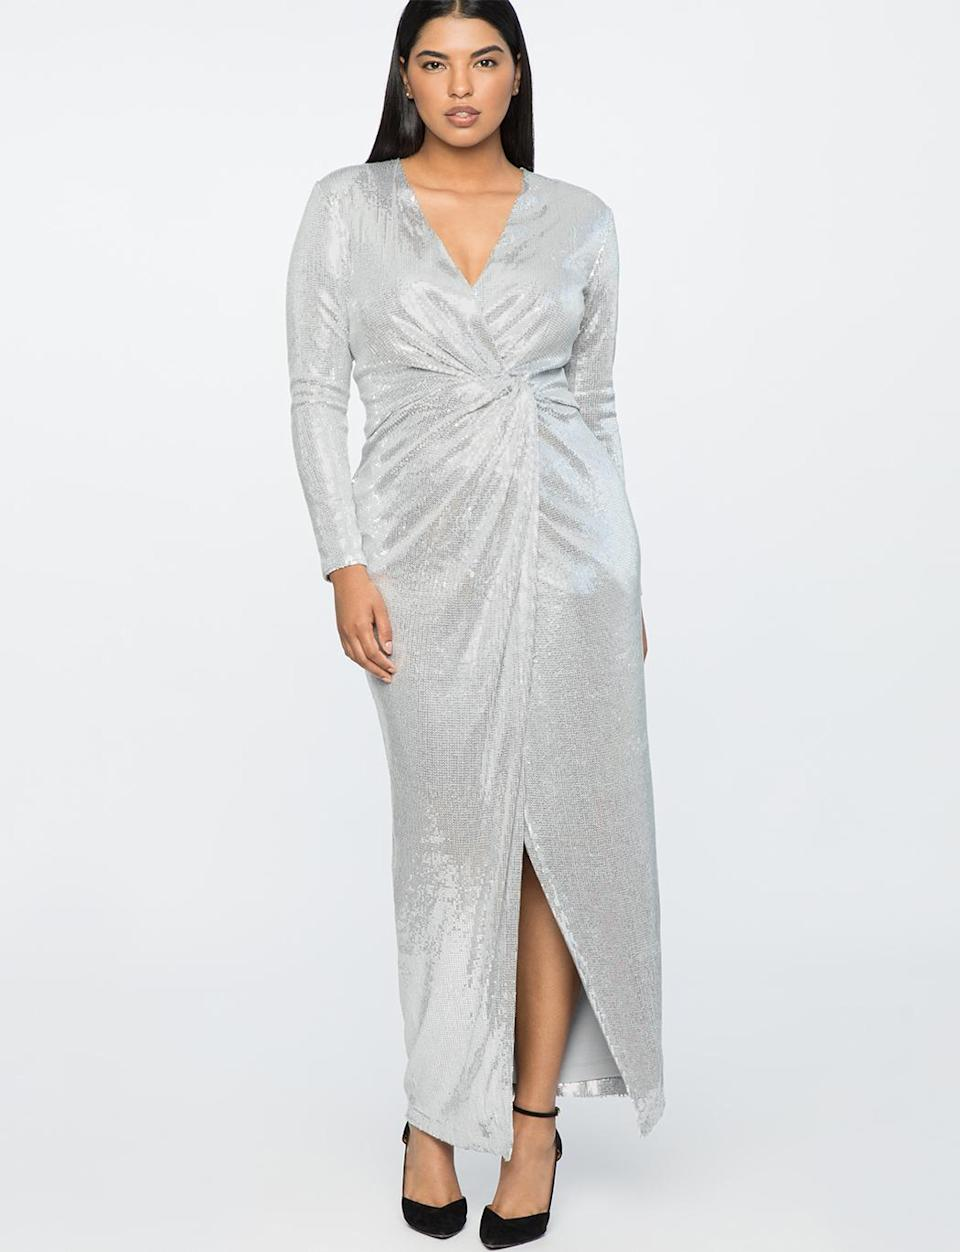 """<p>Walk into any room on NYE wearing this dress and all eyes will be on you. <br>Jason Wu x Eloquii sequined wrap gown, $180, <a rel=""""nofollow noopener"""" href=""""https://fave.co/2OiEHGU"""" target=""""_blank"""" data-ylk=""""slk:eloquii.com"""" class=""""link rapid-noclick-resp"""">eloquii.com</a> </p>"""